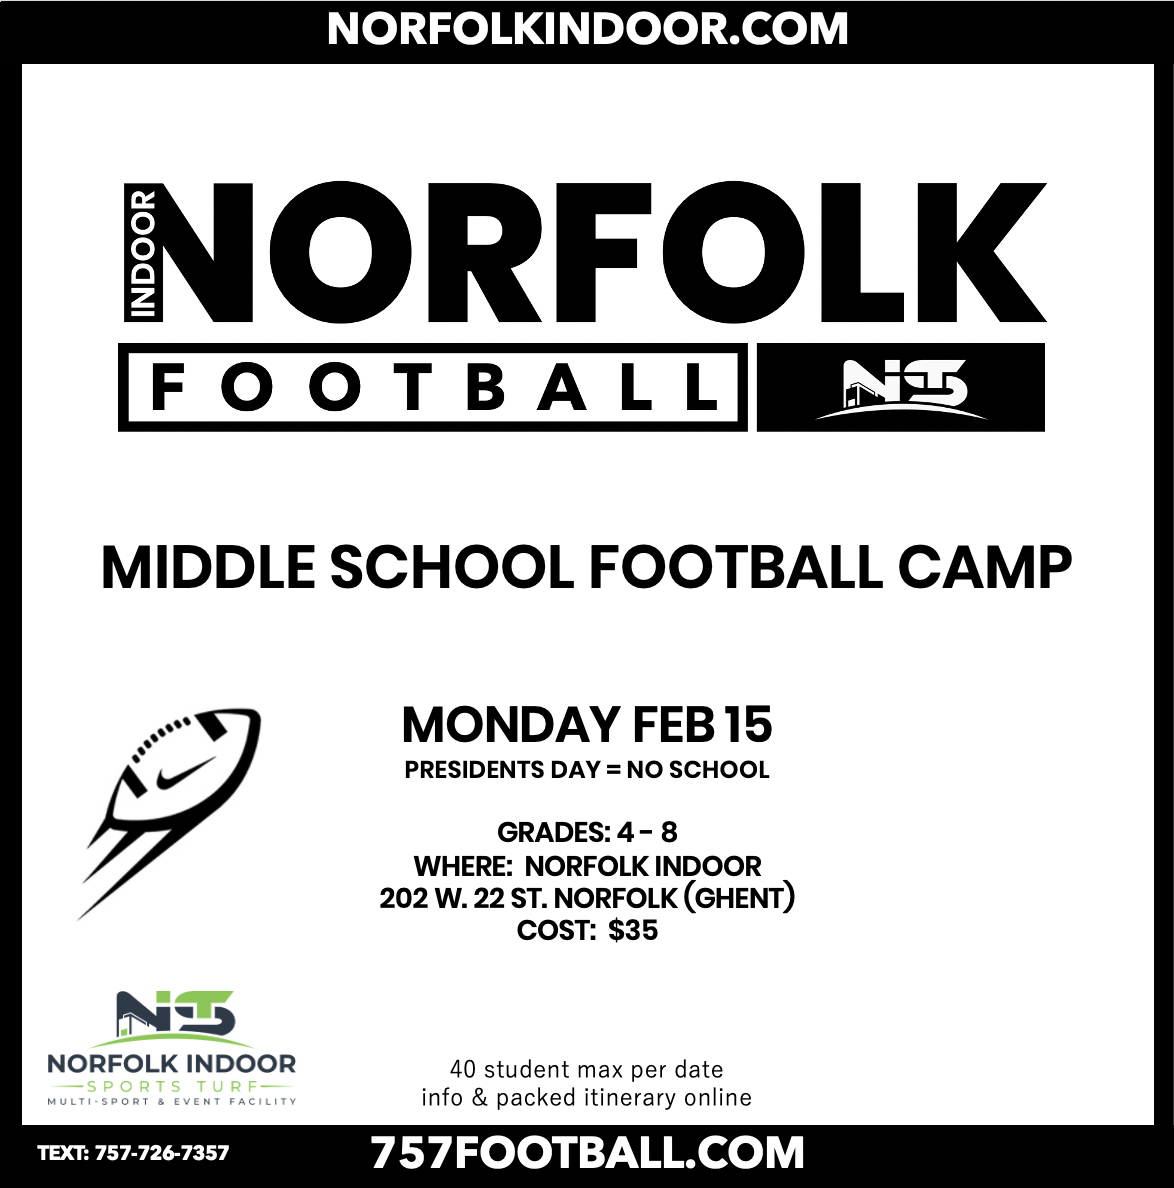 MIDDLE SCHOOL FOOTBALL CAMP